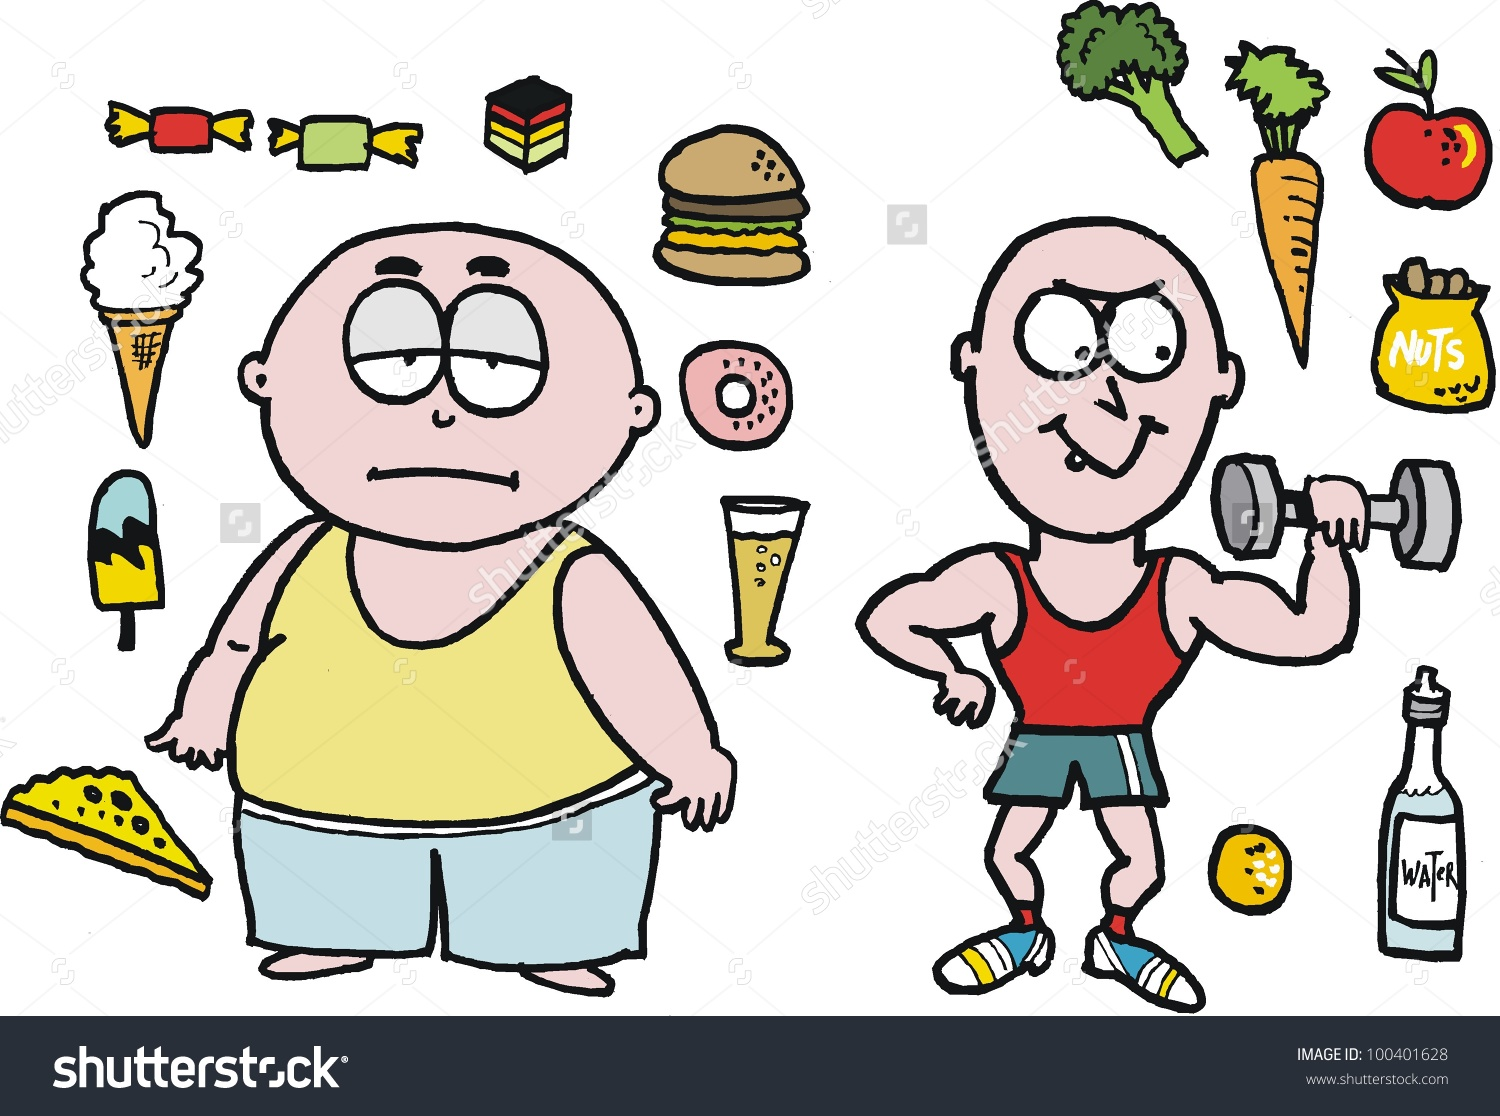 Free Healthy People Cliparts, Download Free Clip Art, Free ...